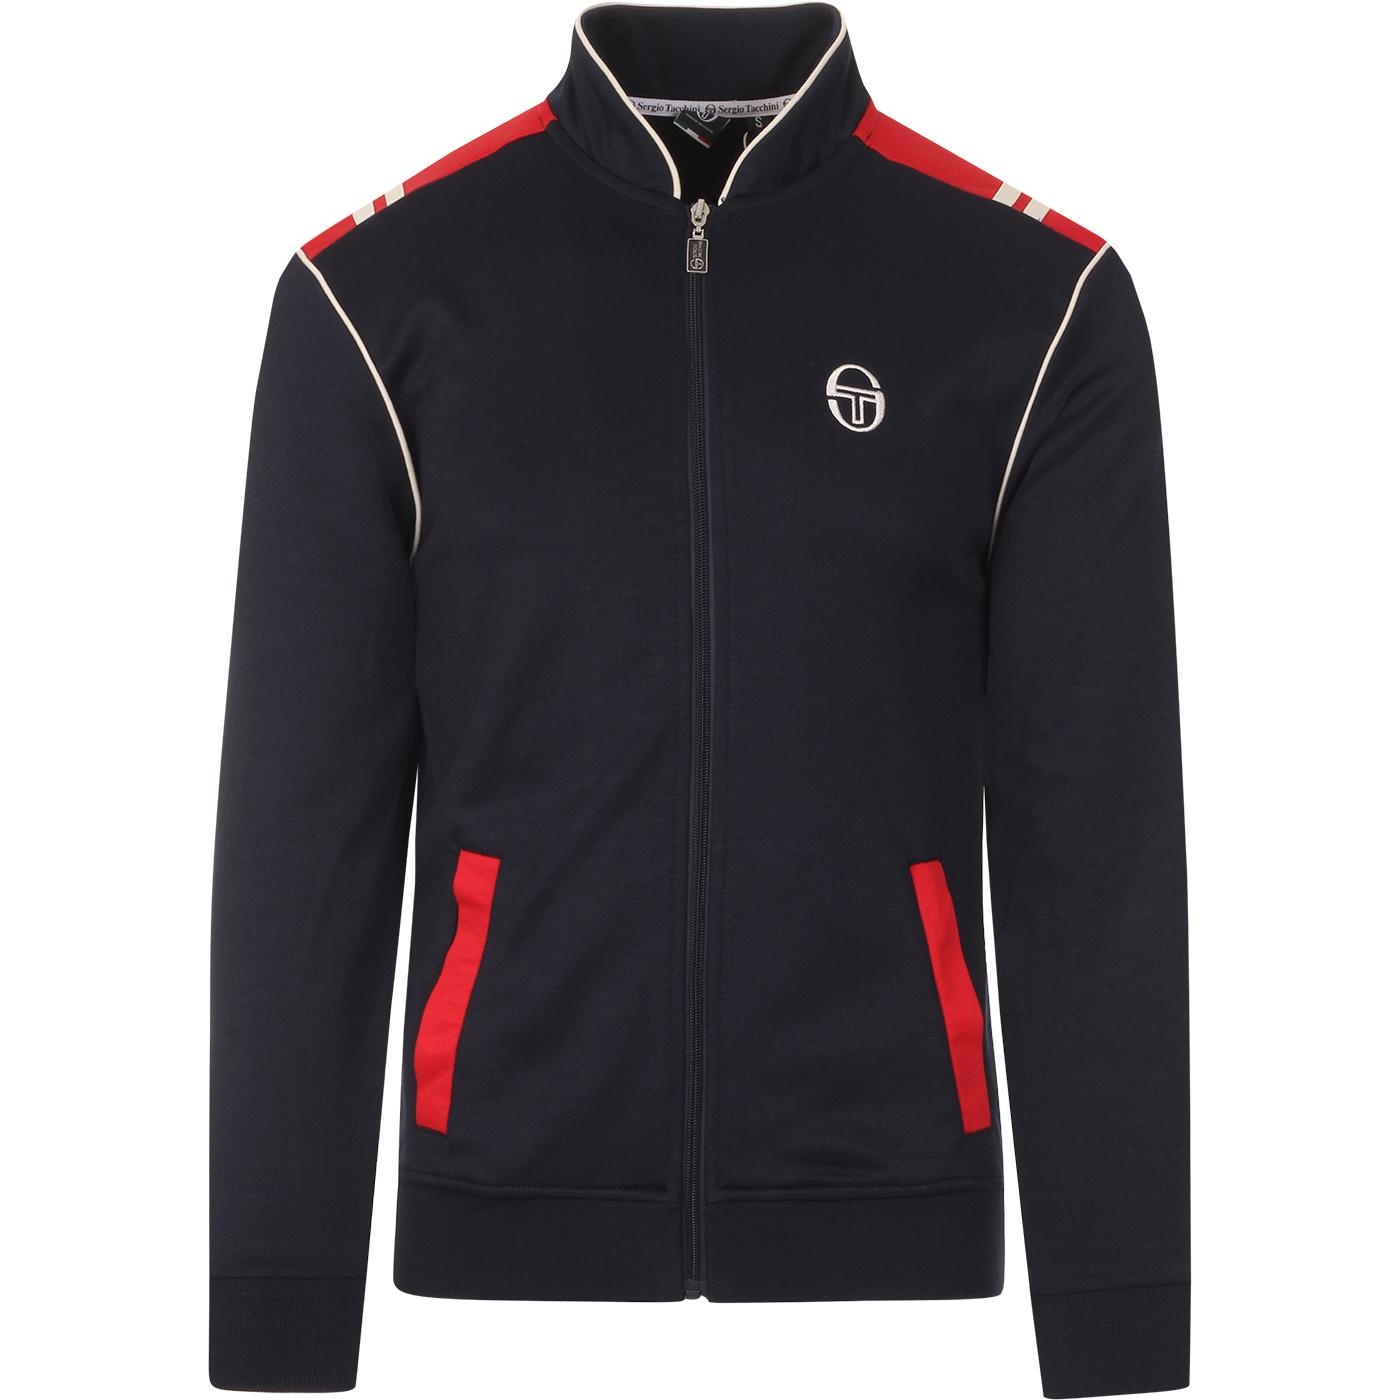 Sammy SERGIO TACCHINI Retro 80s Panel Track Top TE